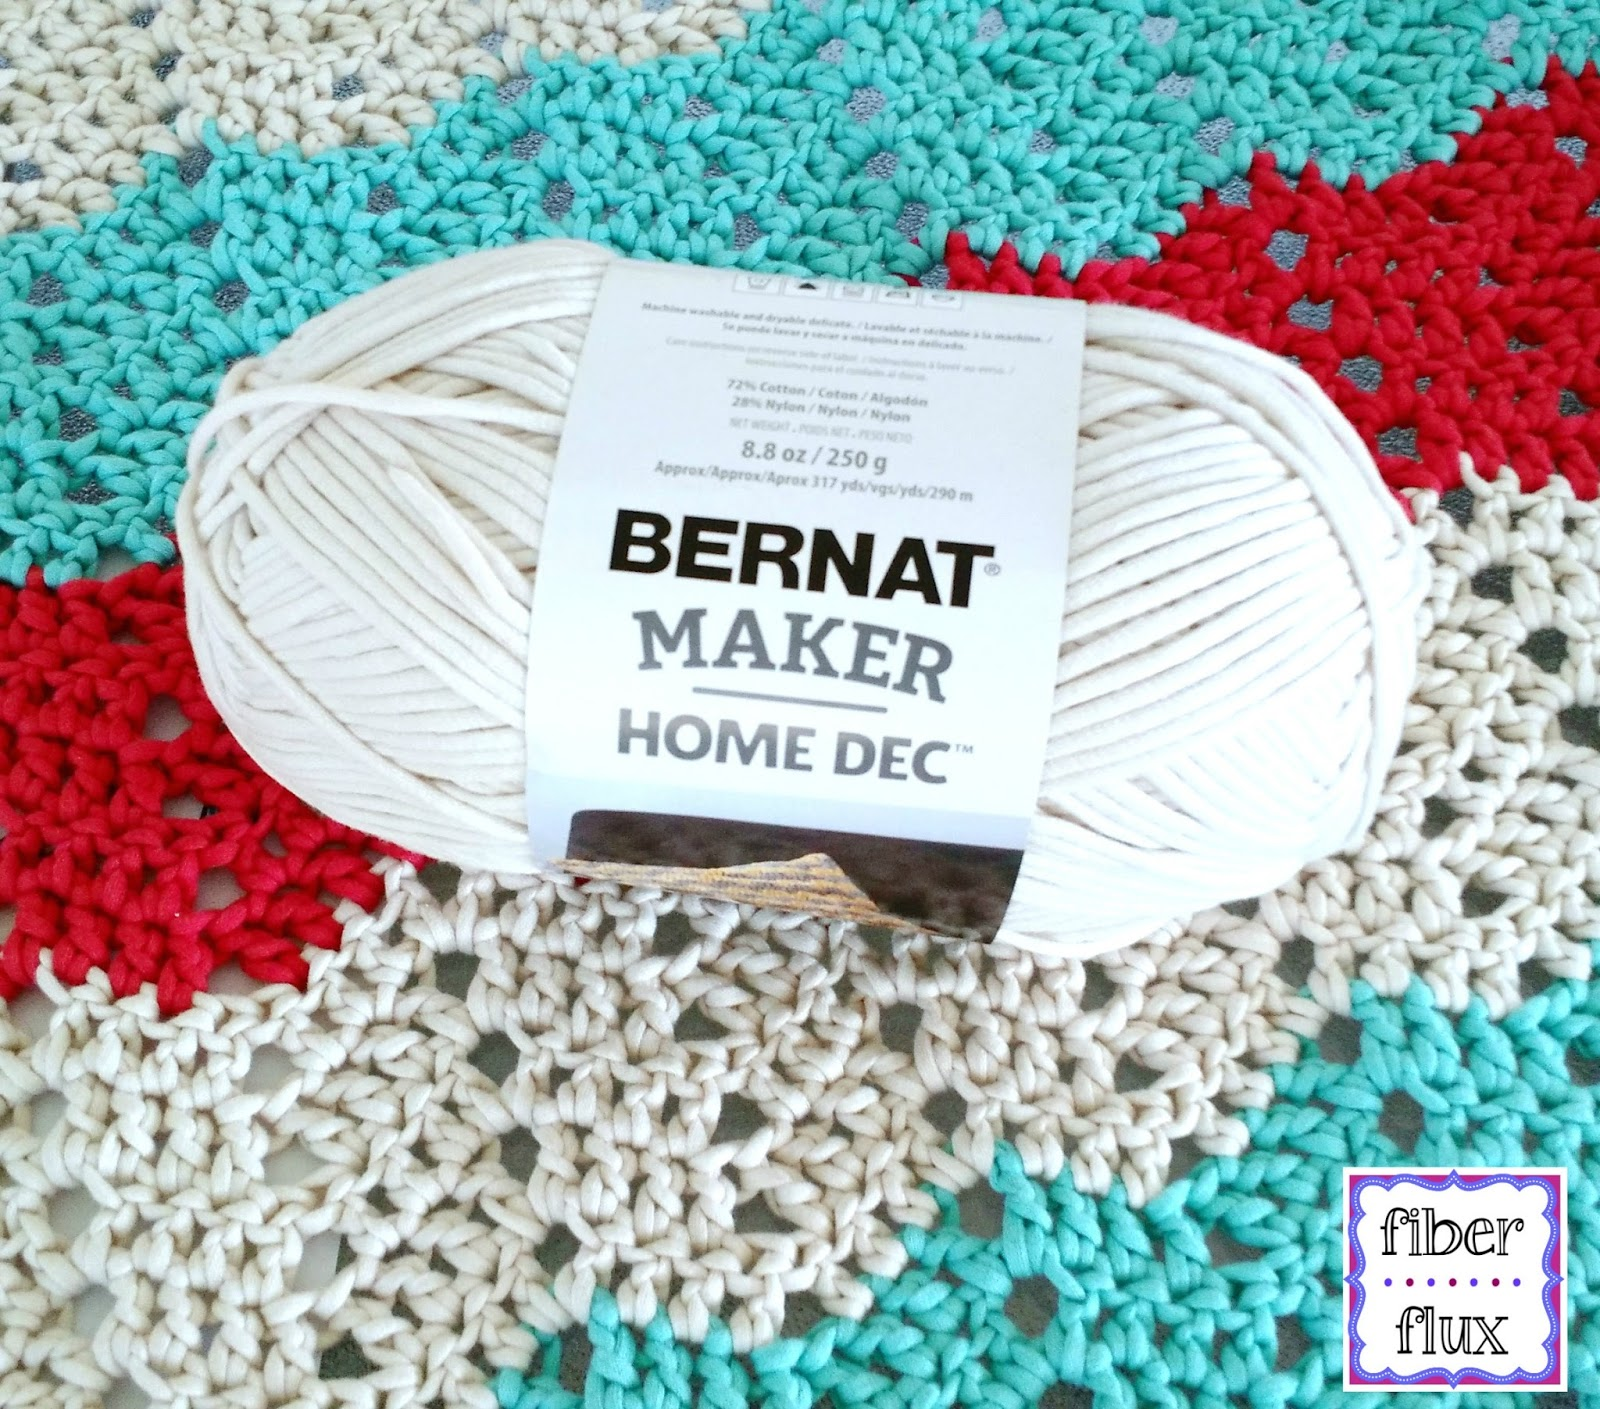 Fiber Flux Yarn 101 Bernat Maker Home Dec